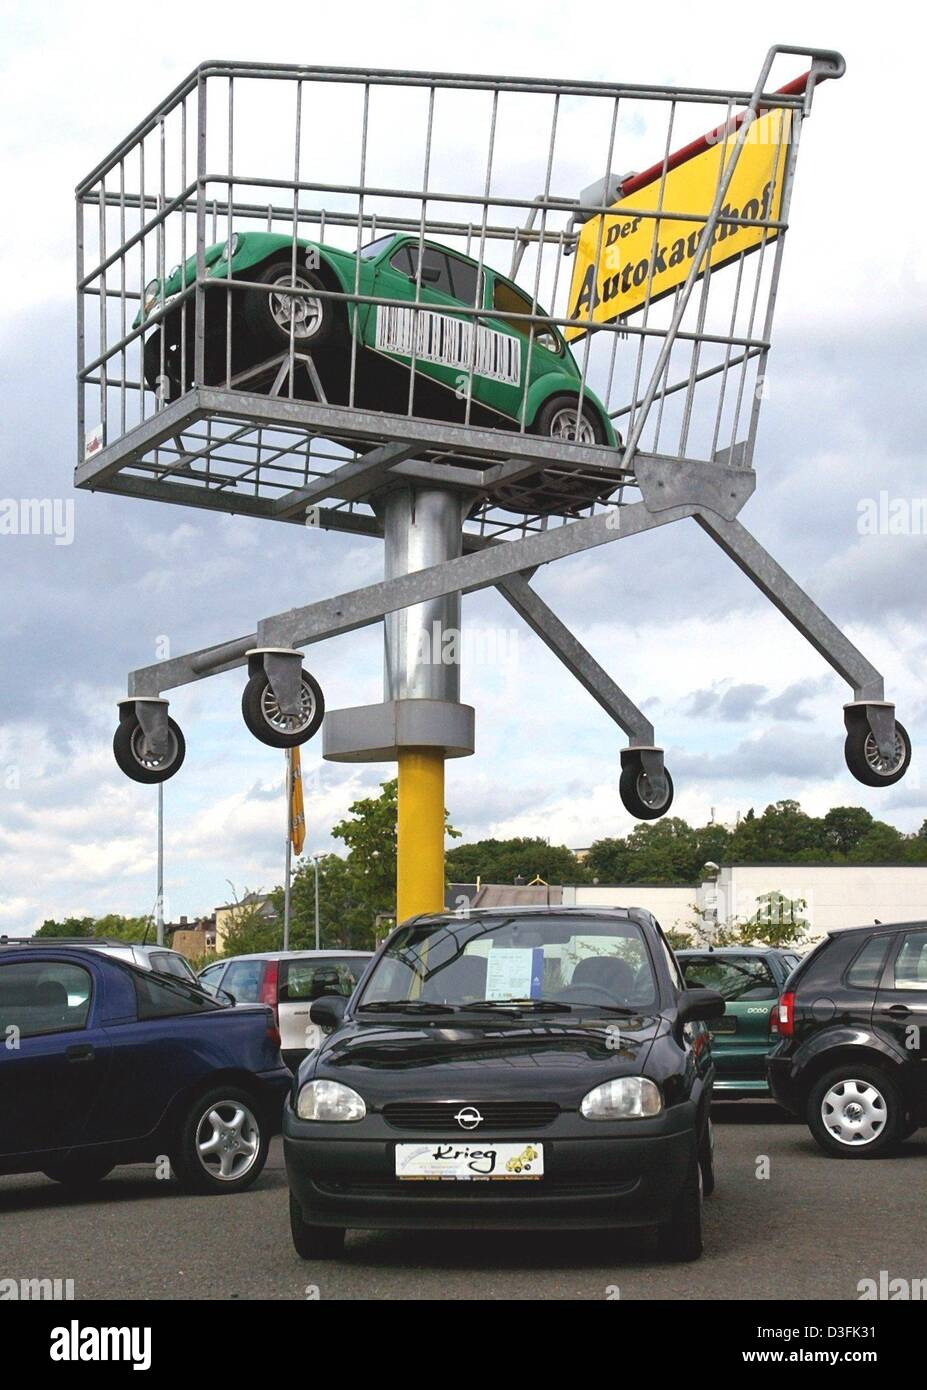 (dpa) - A VW beatle stands in an oversized shopping trolley as an eye-catcher towering above the sales car-park Stock Photo